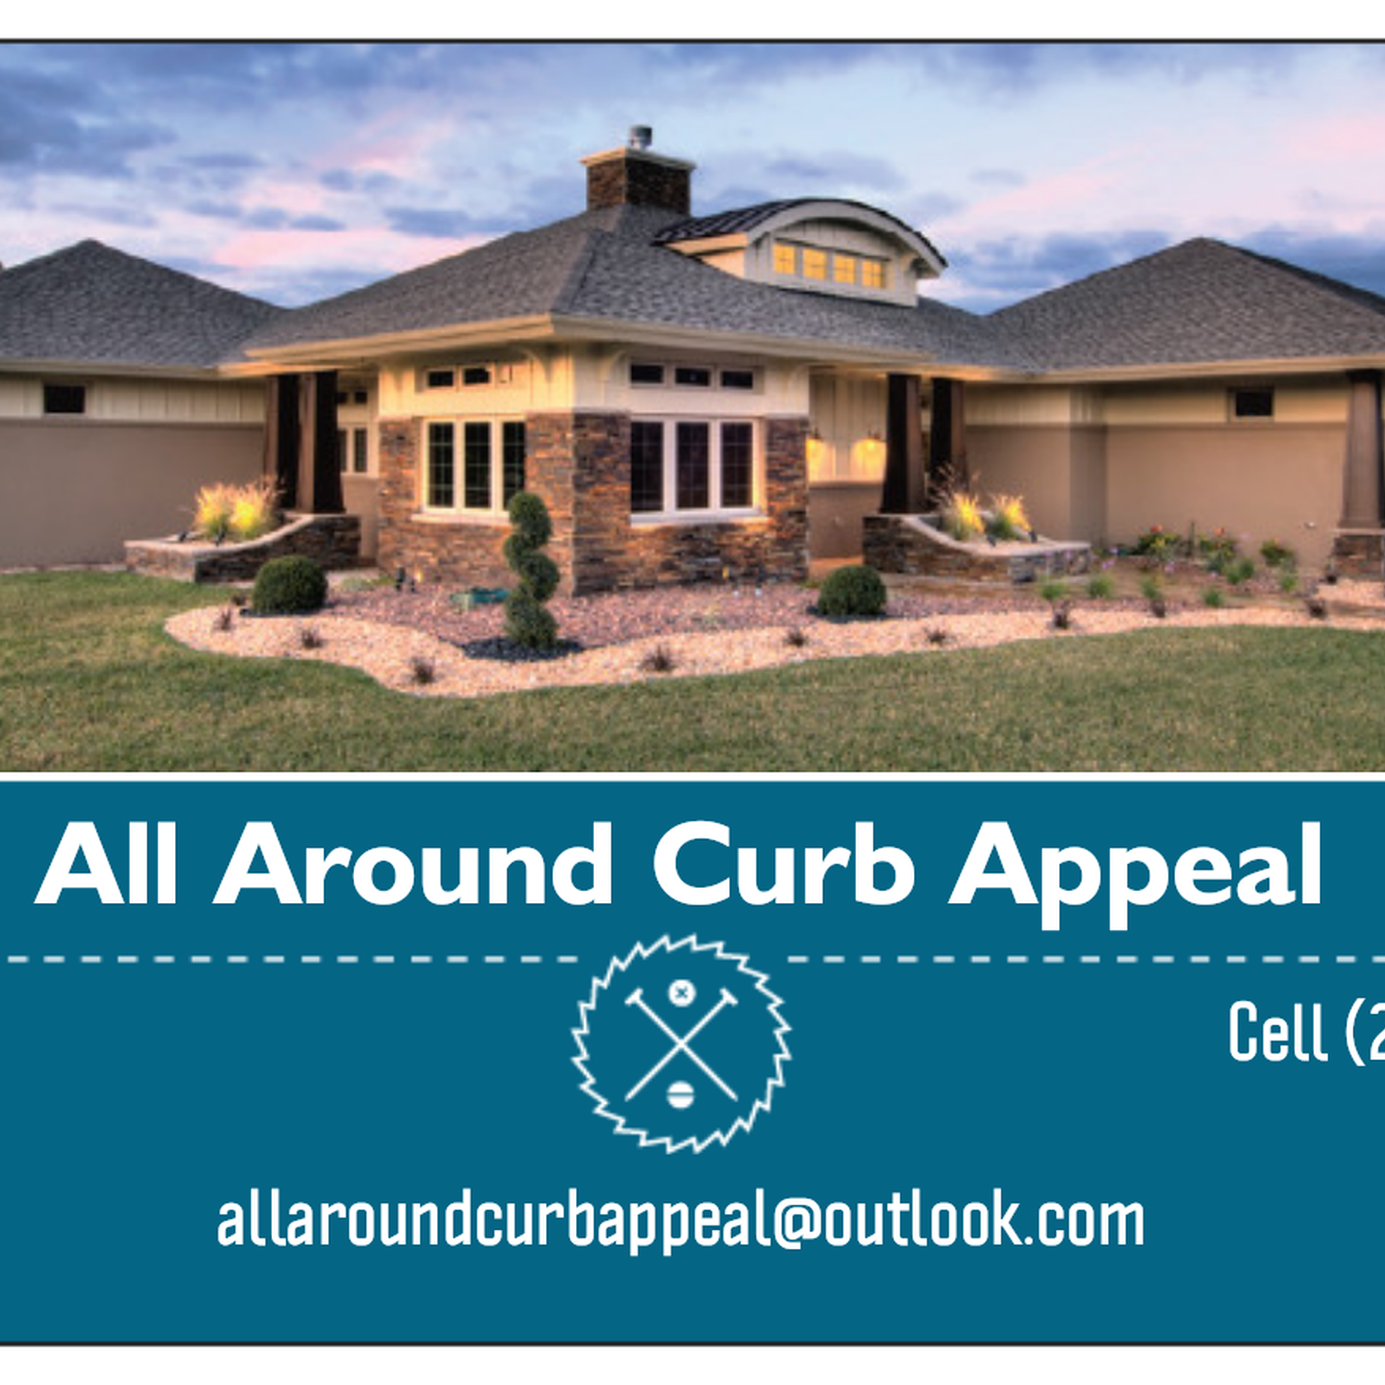 All Around Curb Appeal